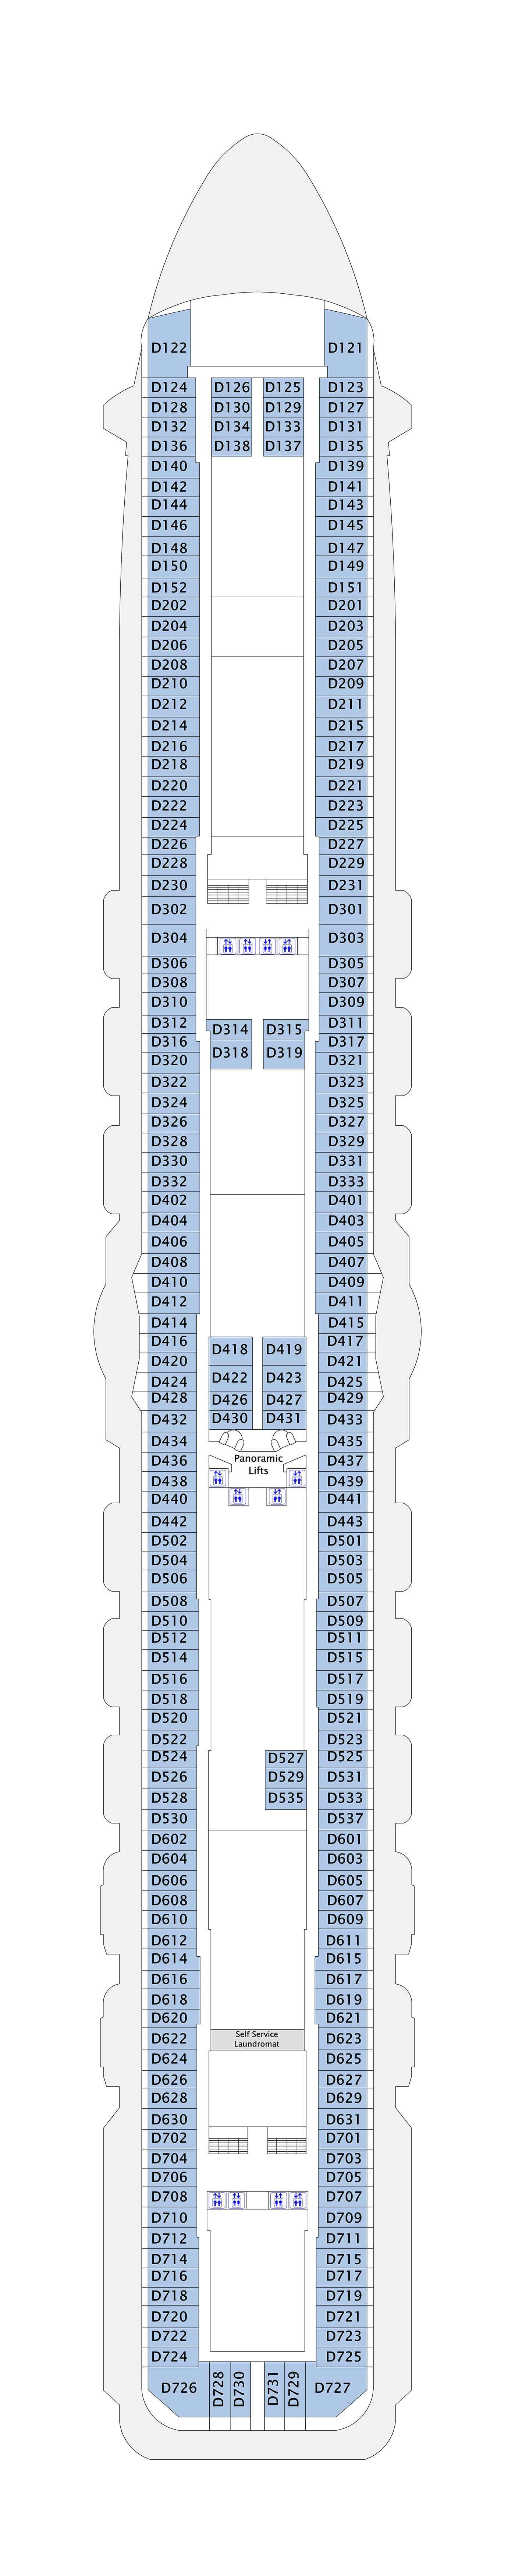 Royal Princess deck plan 9